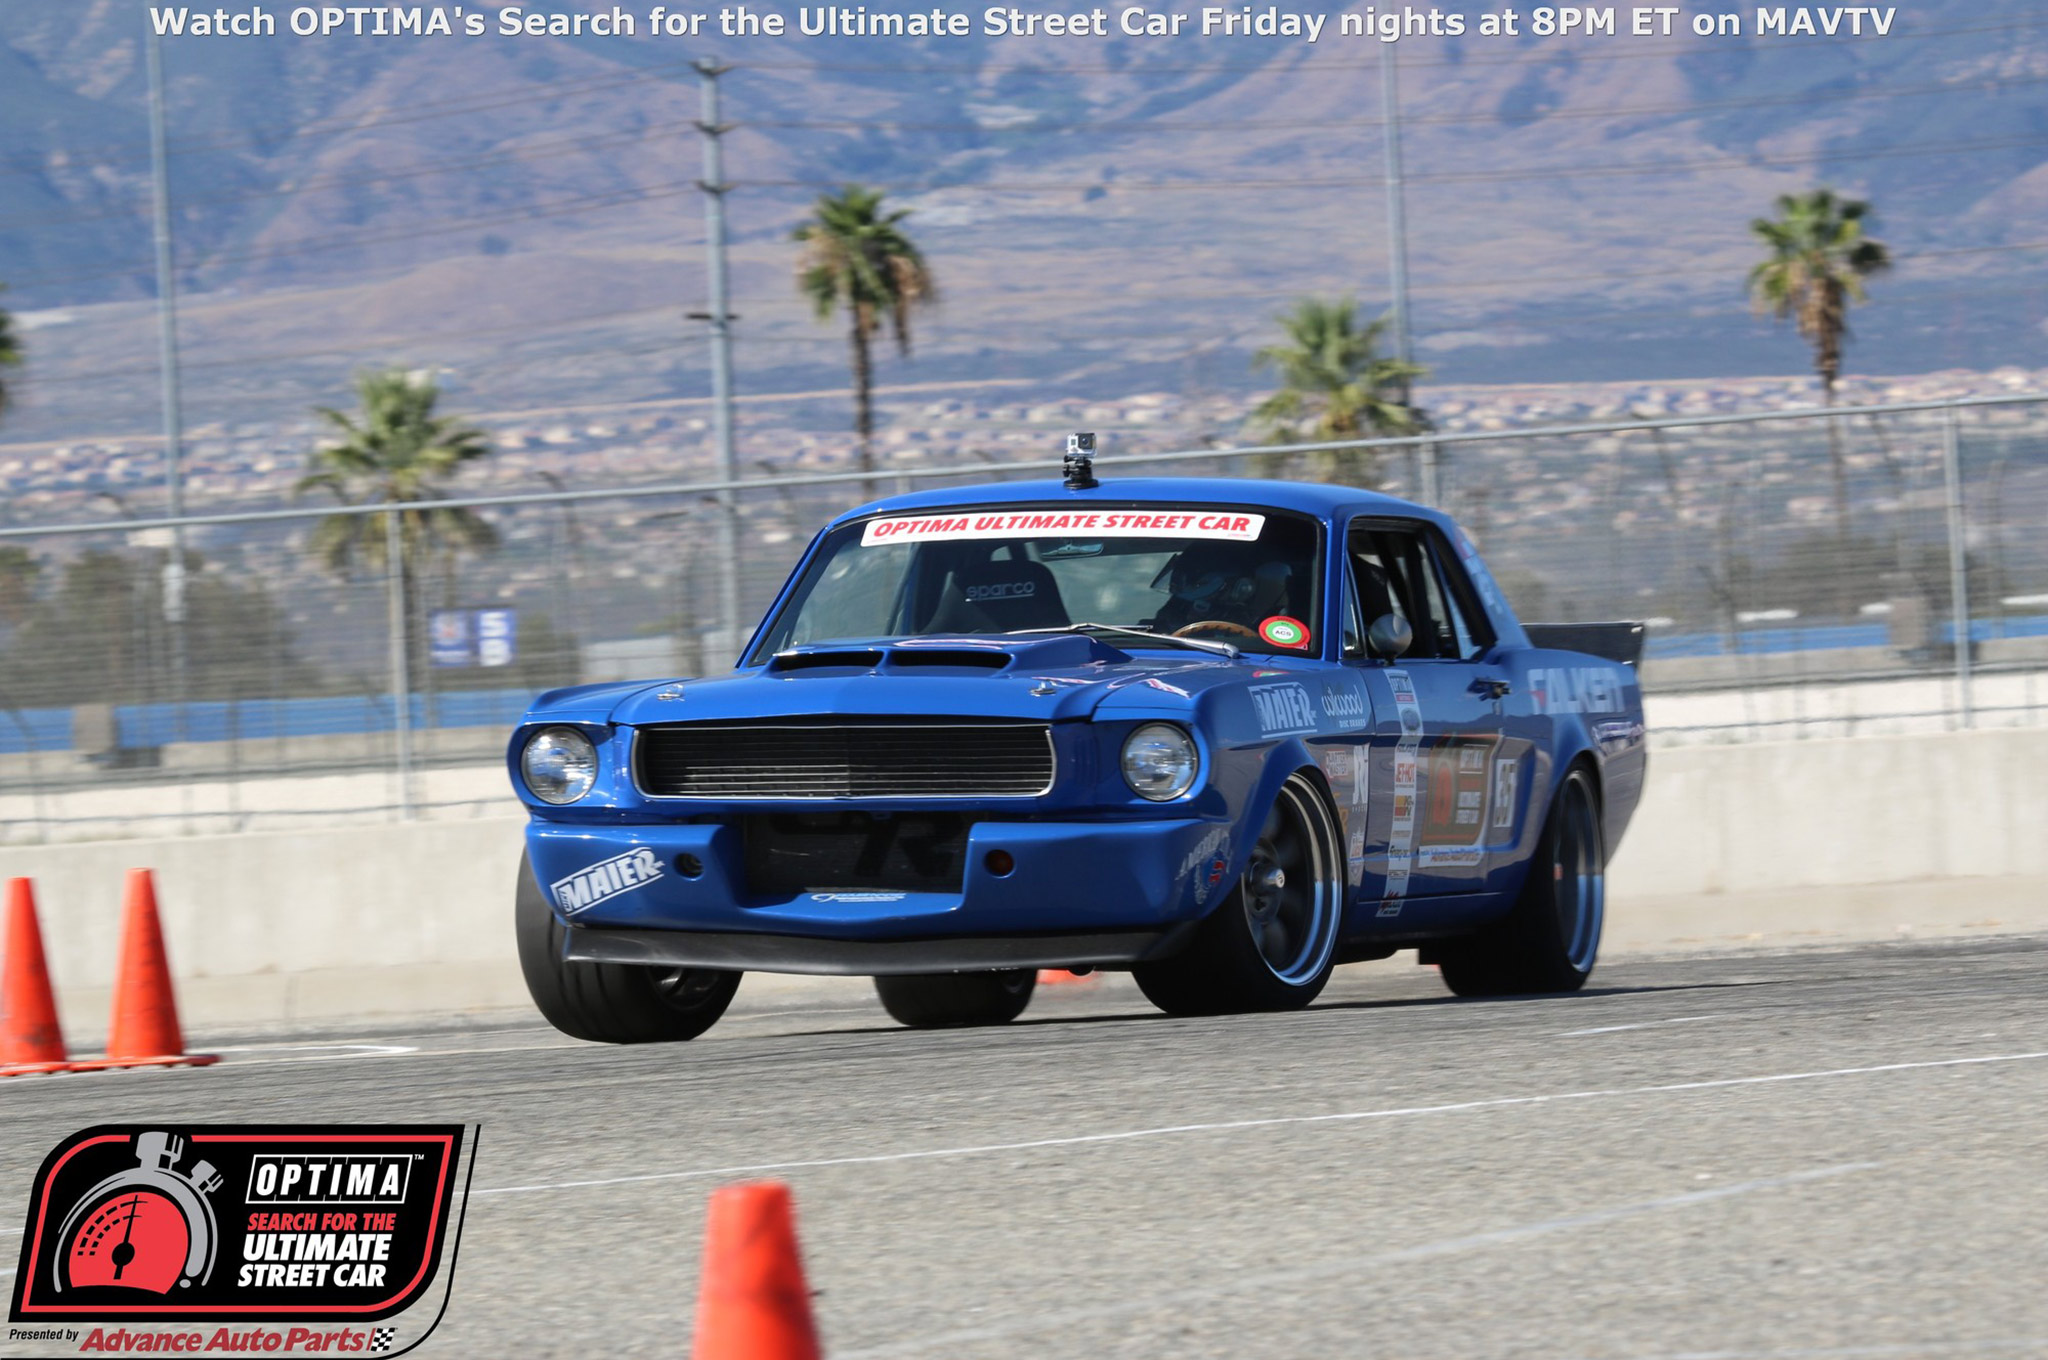 Mike Maier punched his ticket to the SEMA Show and OUSCI early in the season, but used the Fontana event as an opportunity to dial in his '66 Mustang, while sizing up his potential competition in Las Vegas.